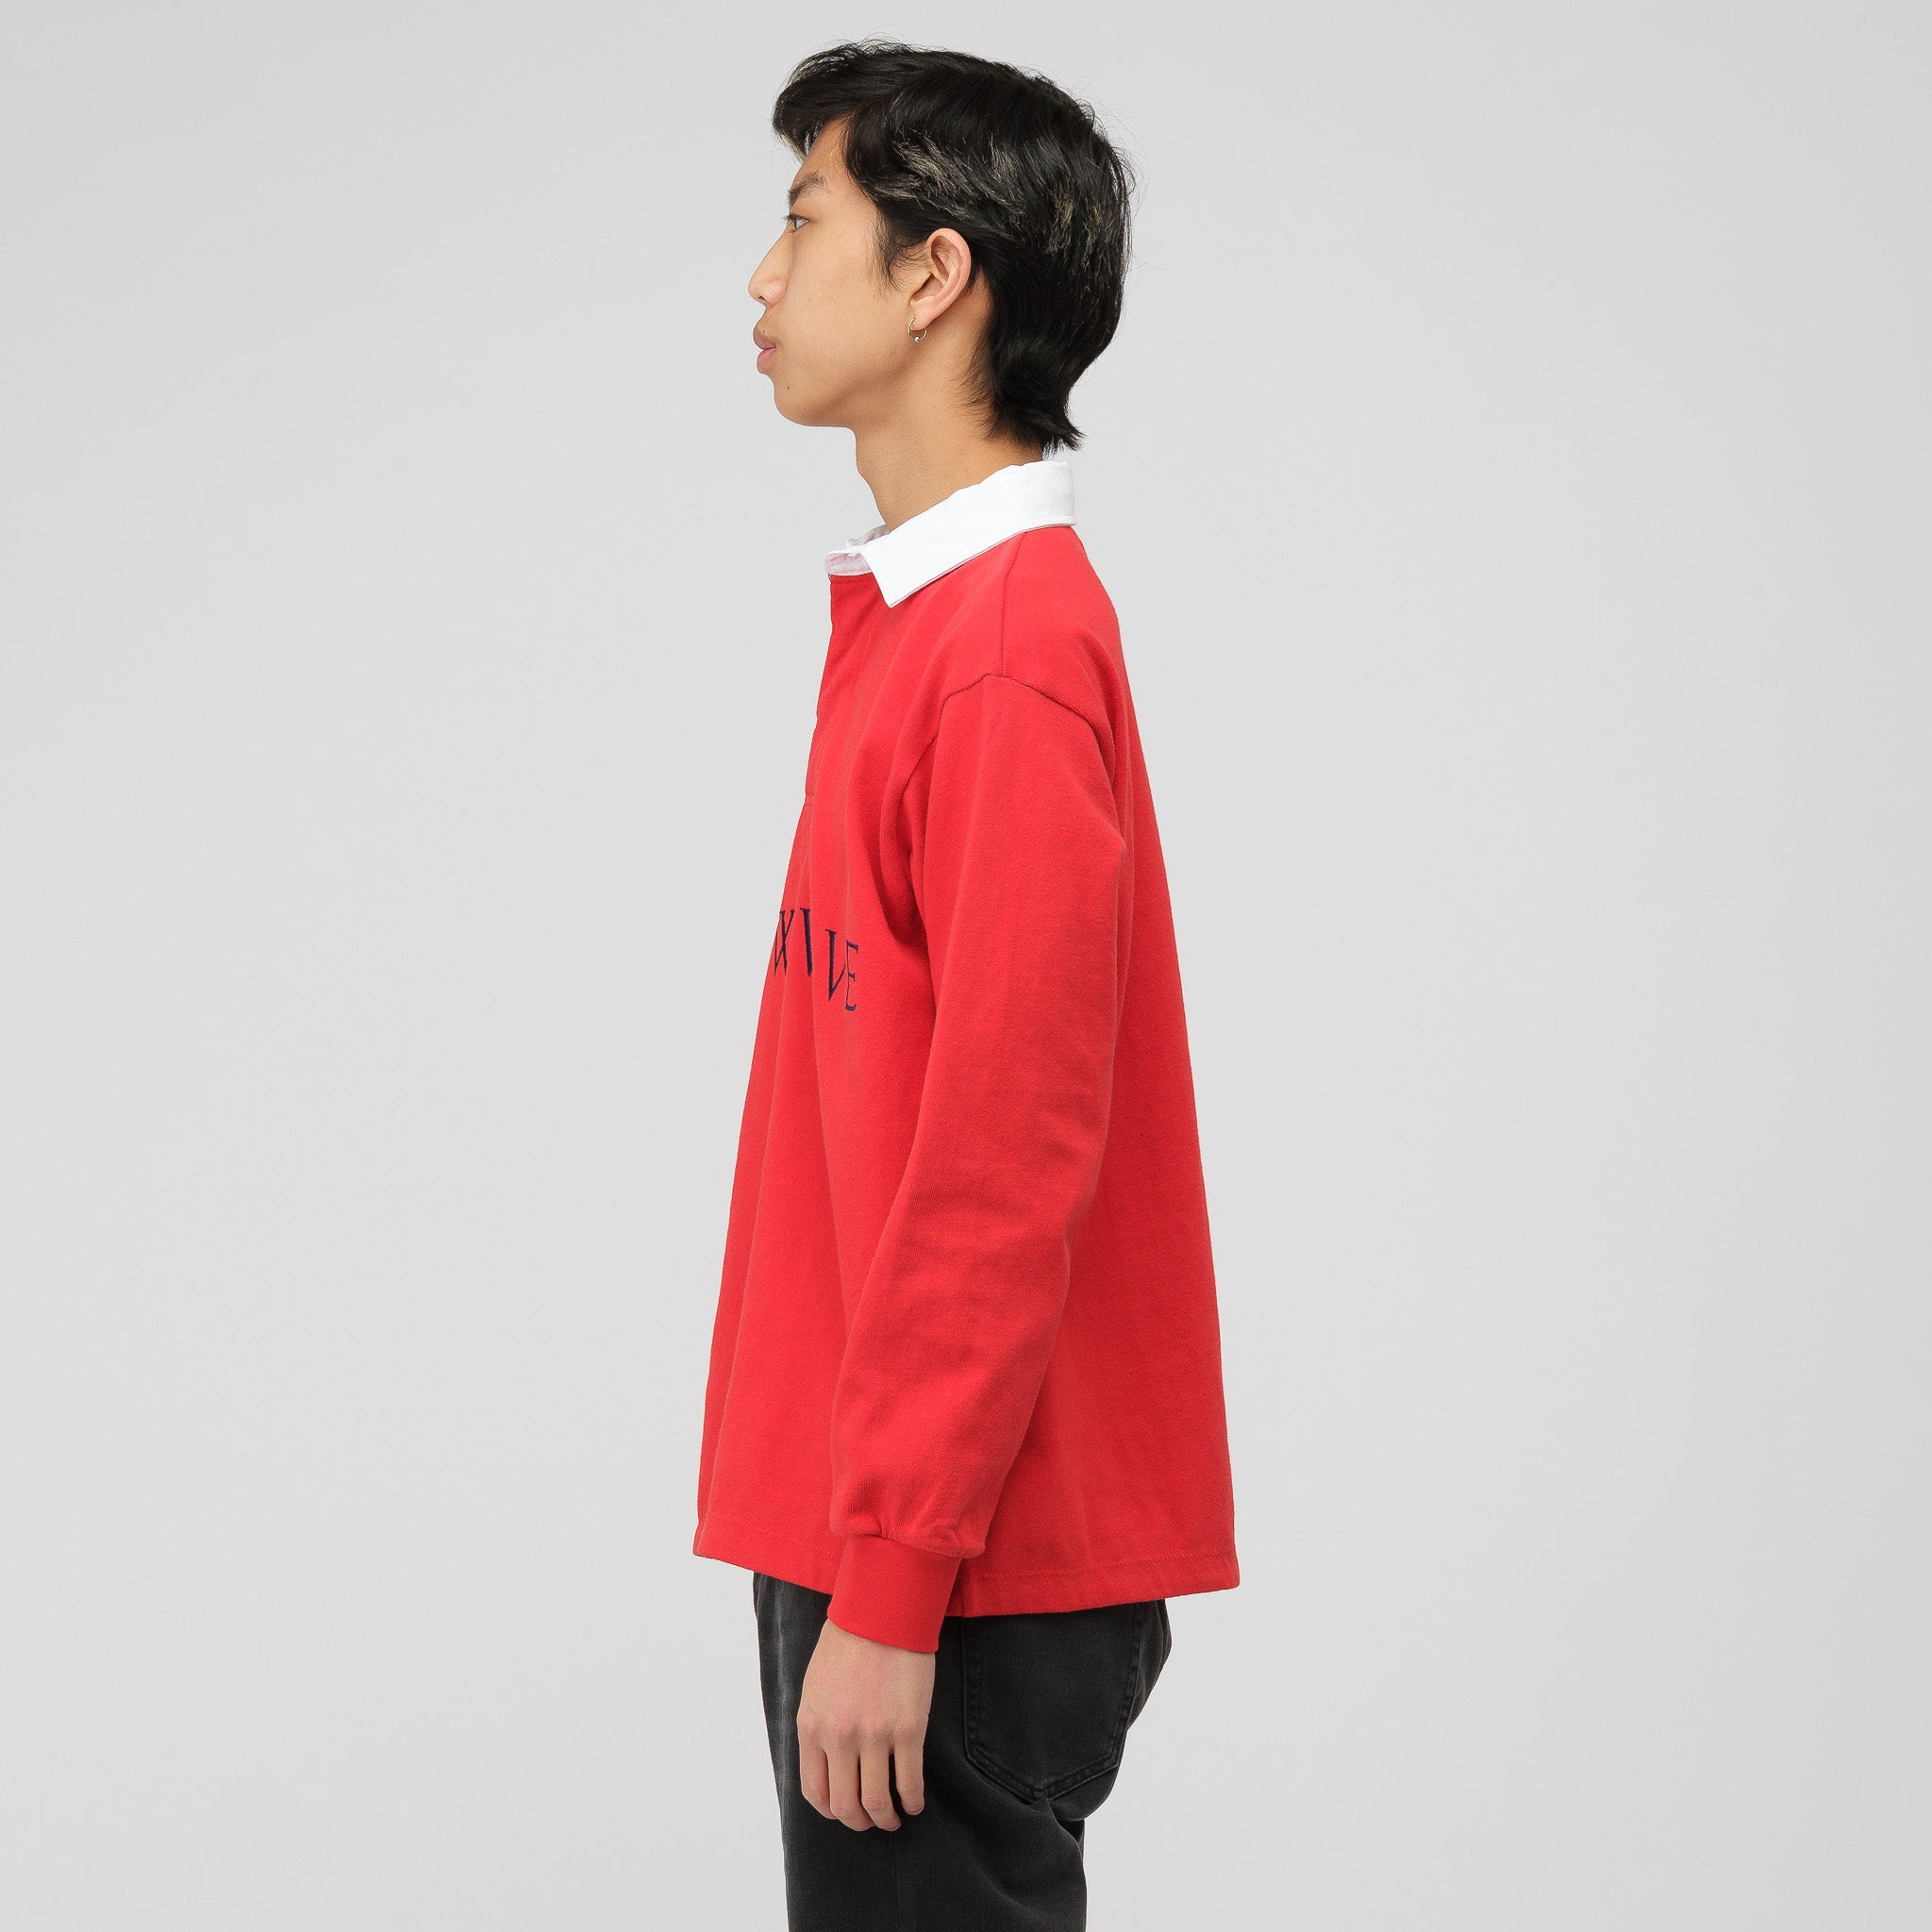 Know Wave Rugby Shirt In Red Notre